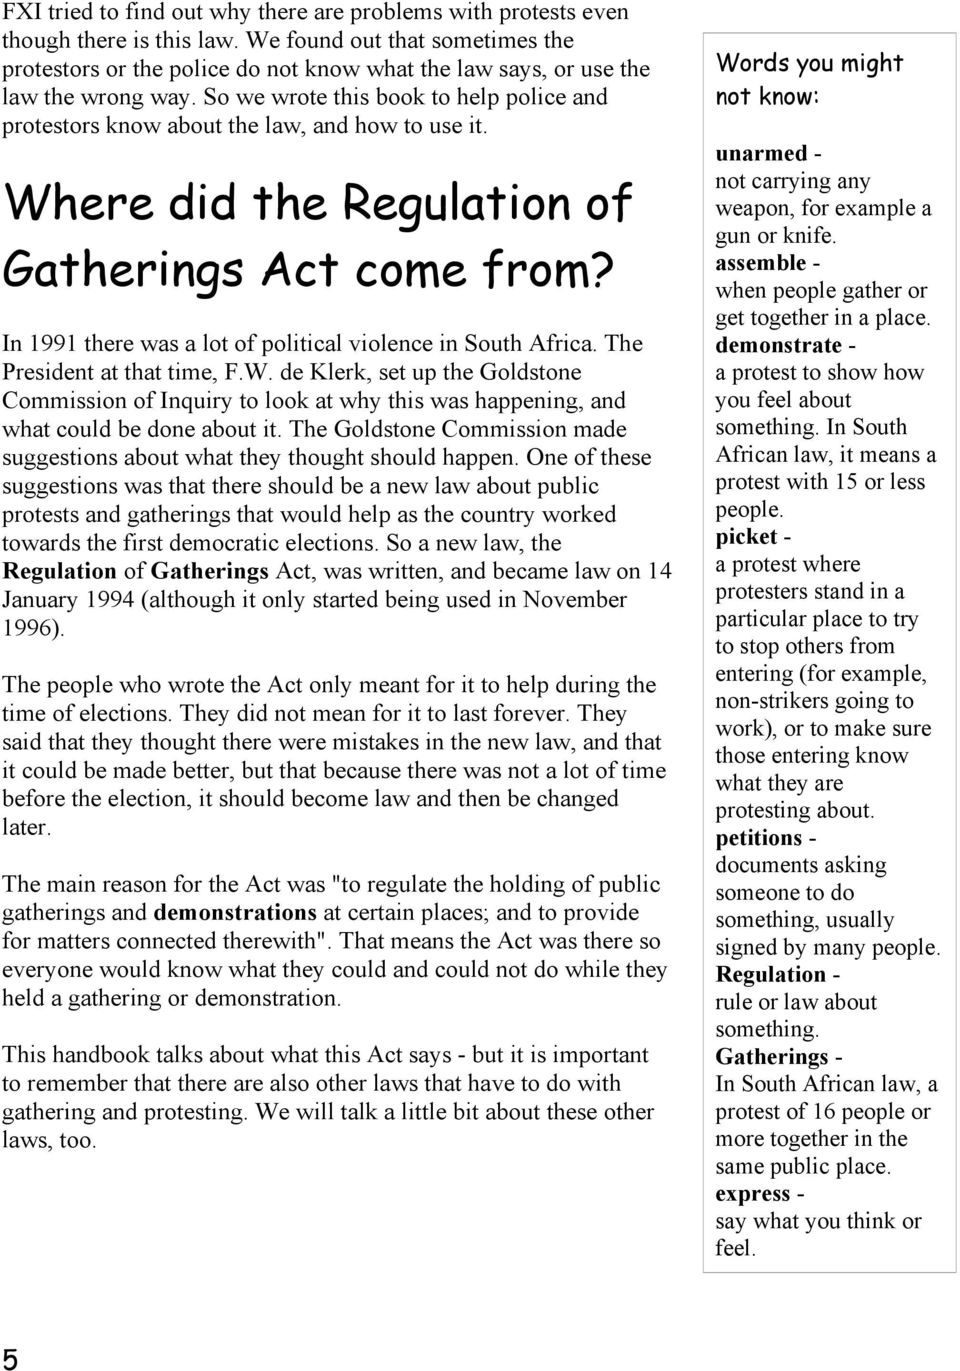 So we wrote this book to help police and protestors know about the law, and how to use it. Where did the Regulation of Gatherings Act come from?